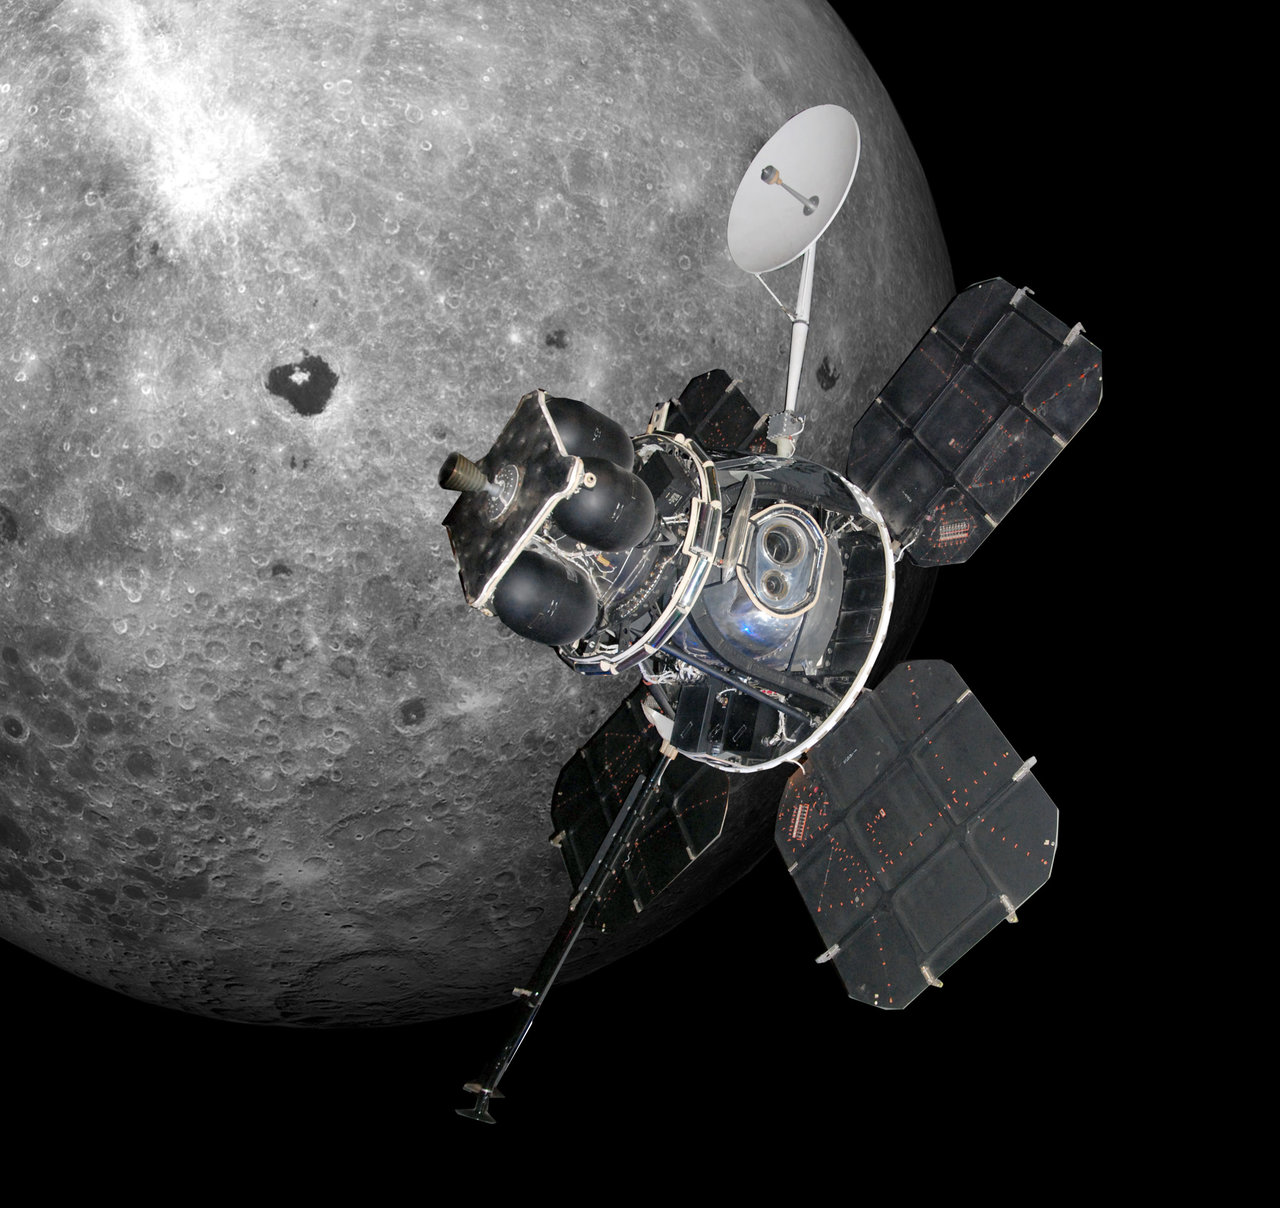 Spacecraft above the Moon.